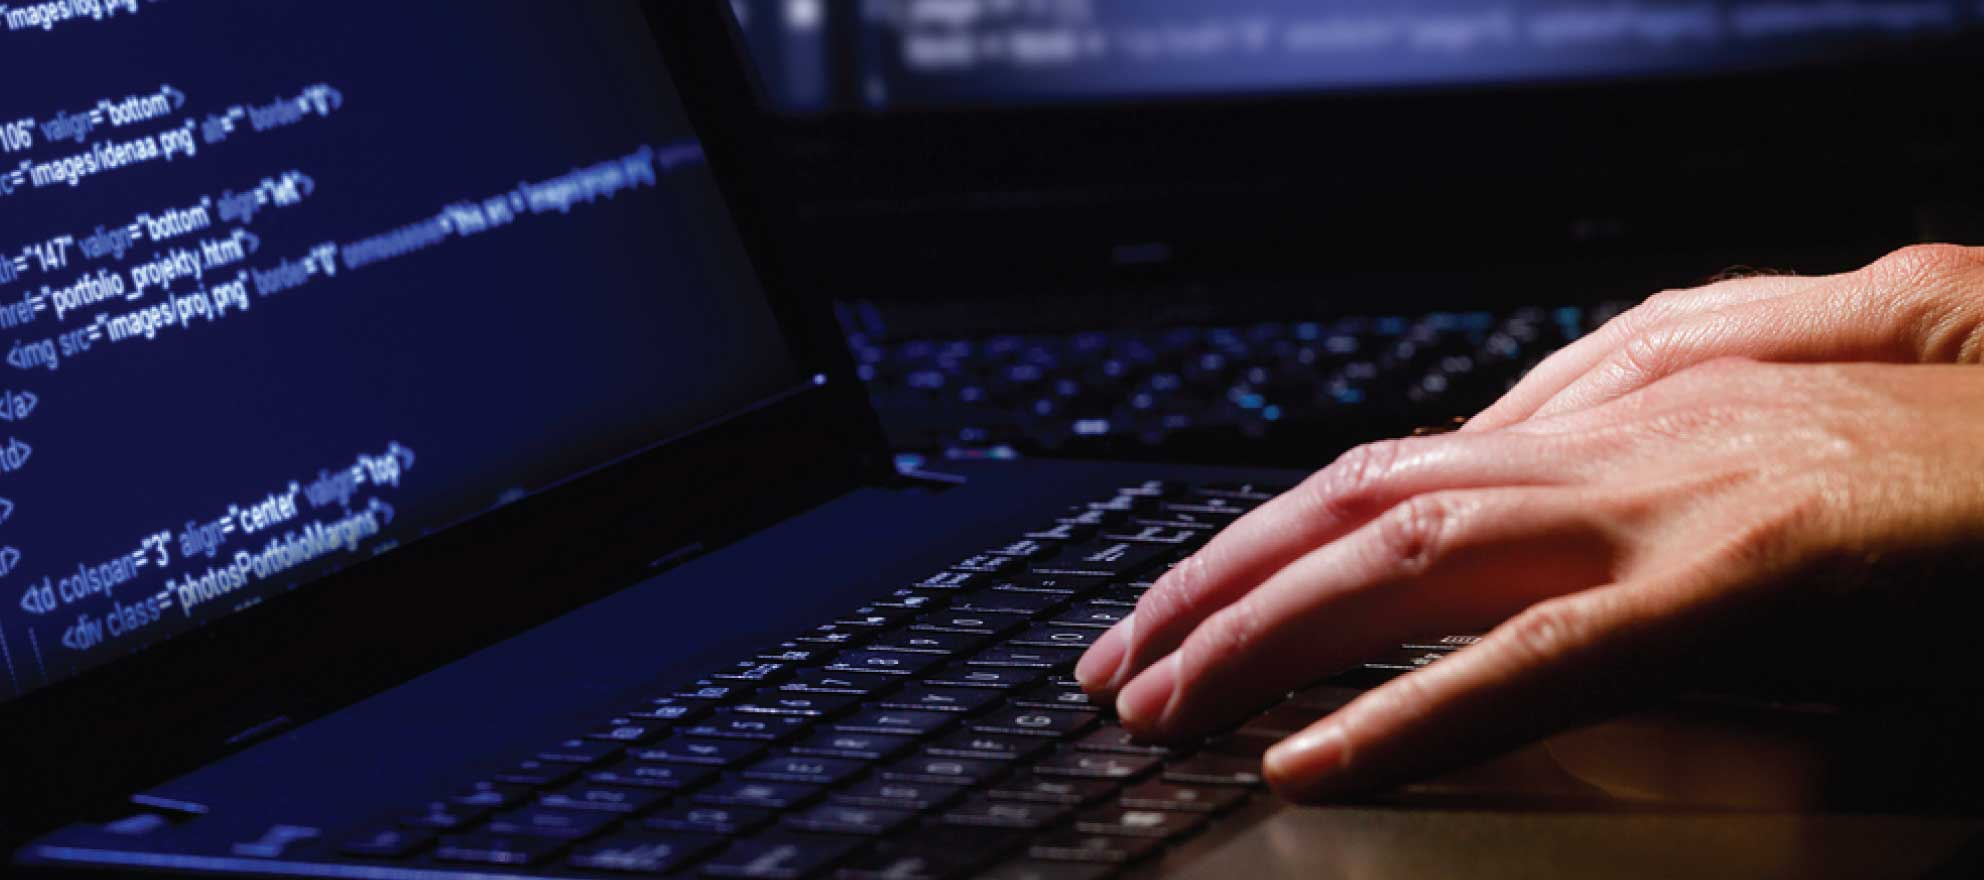 Cyber attacks are hitting the real estate industry hard